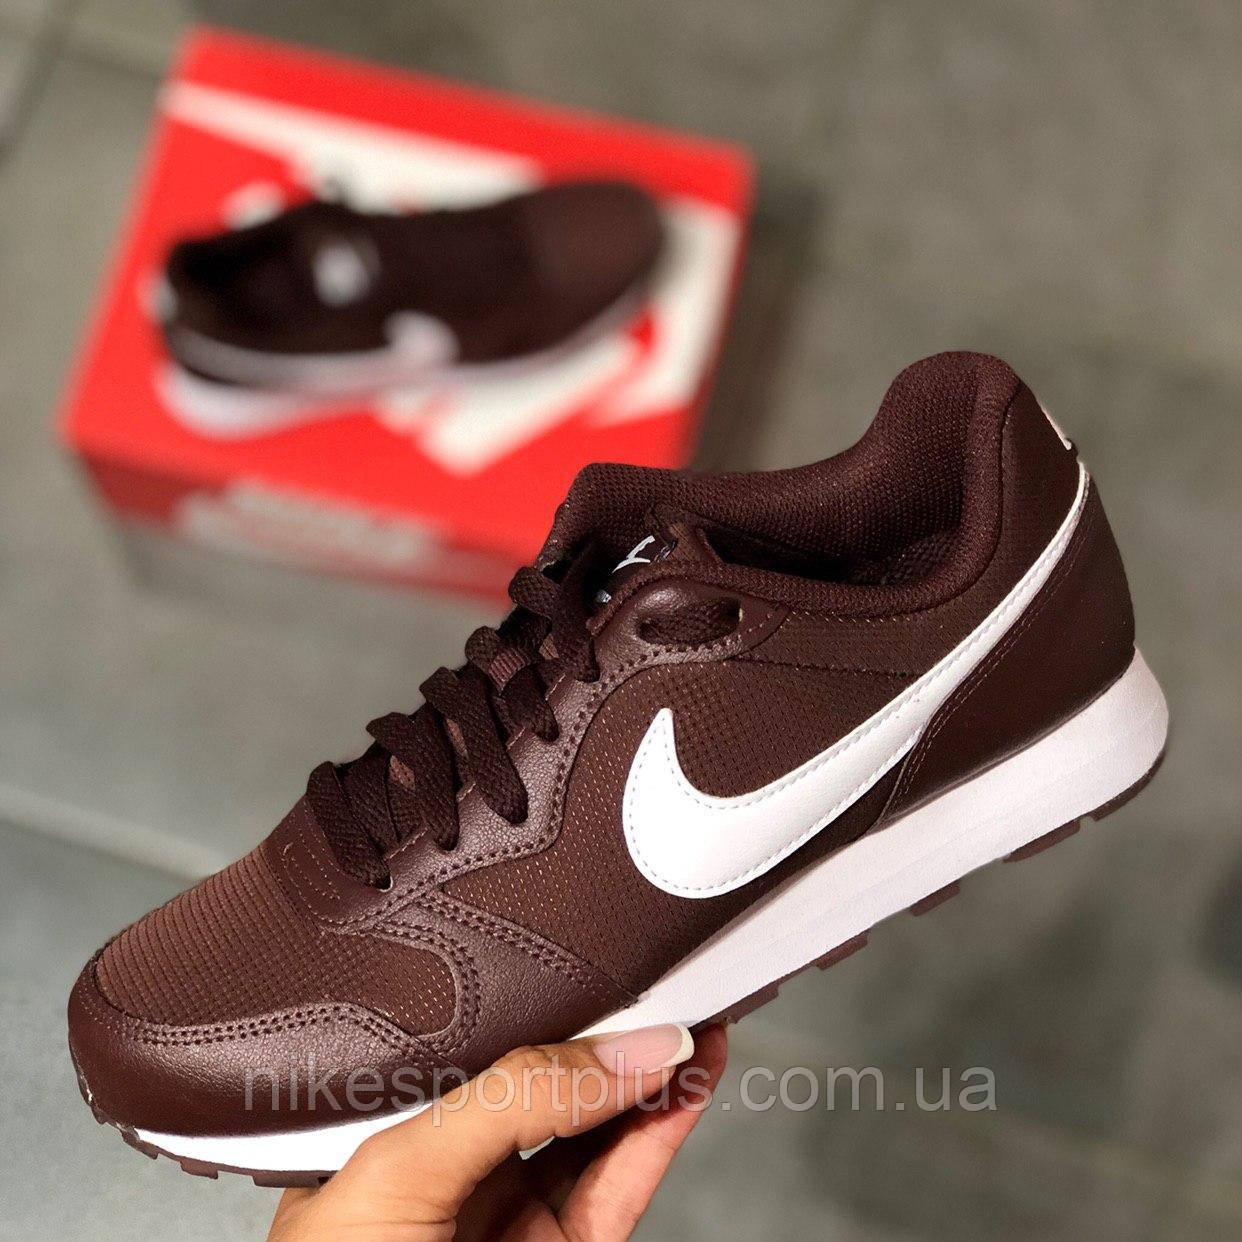 КРОССОВКИ NIKE MD RUNNER 2 PE (GS) AT6287-200